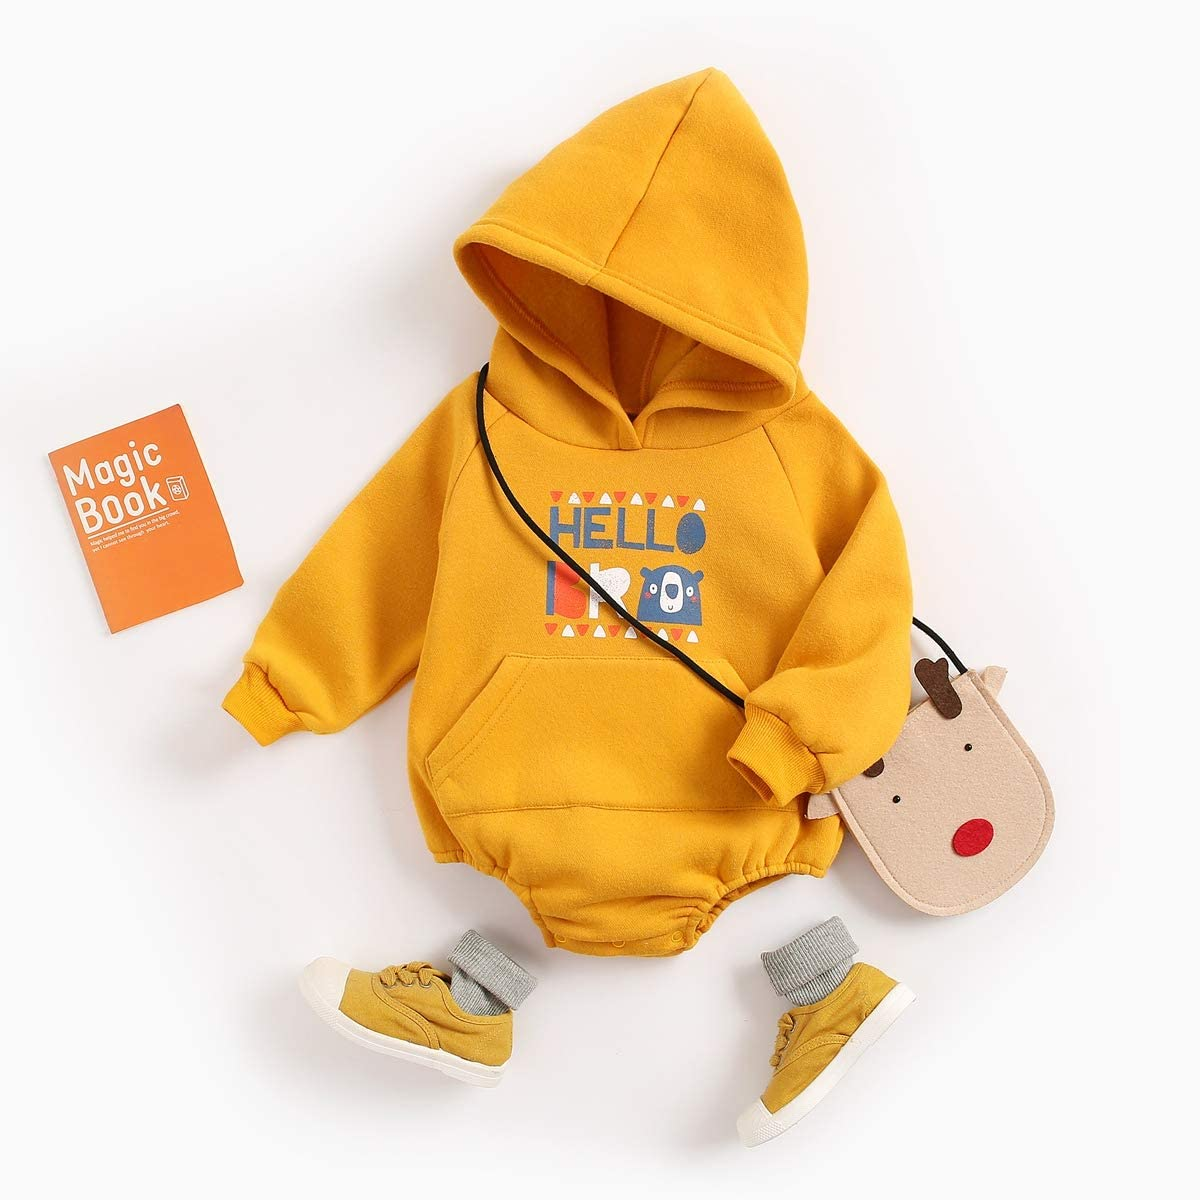 Sanlutoz Winter Baby Clothing Cartoon Long Sleeve Baby Bodysuits with Hooded Cotton